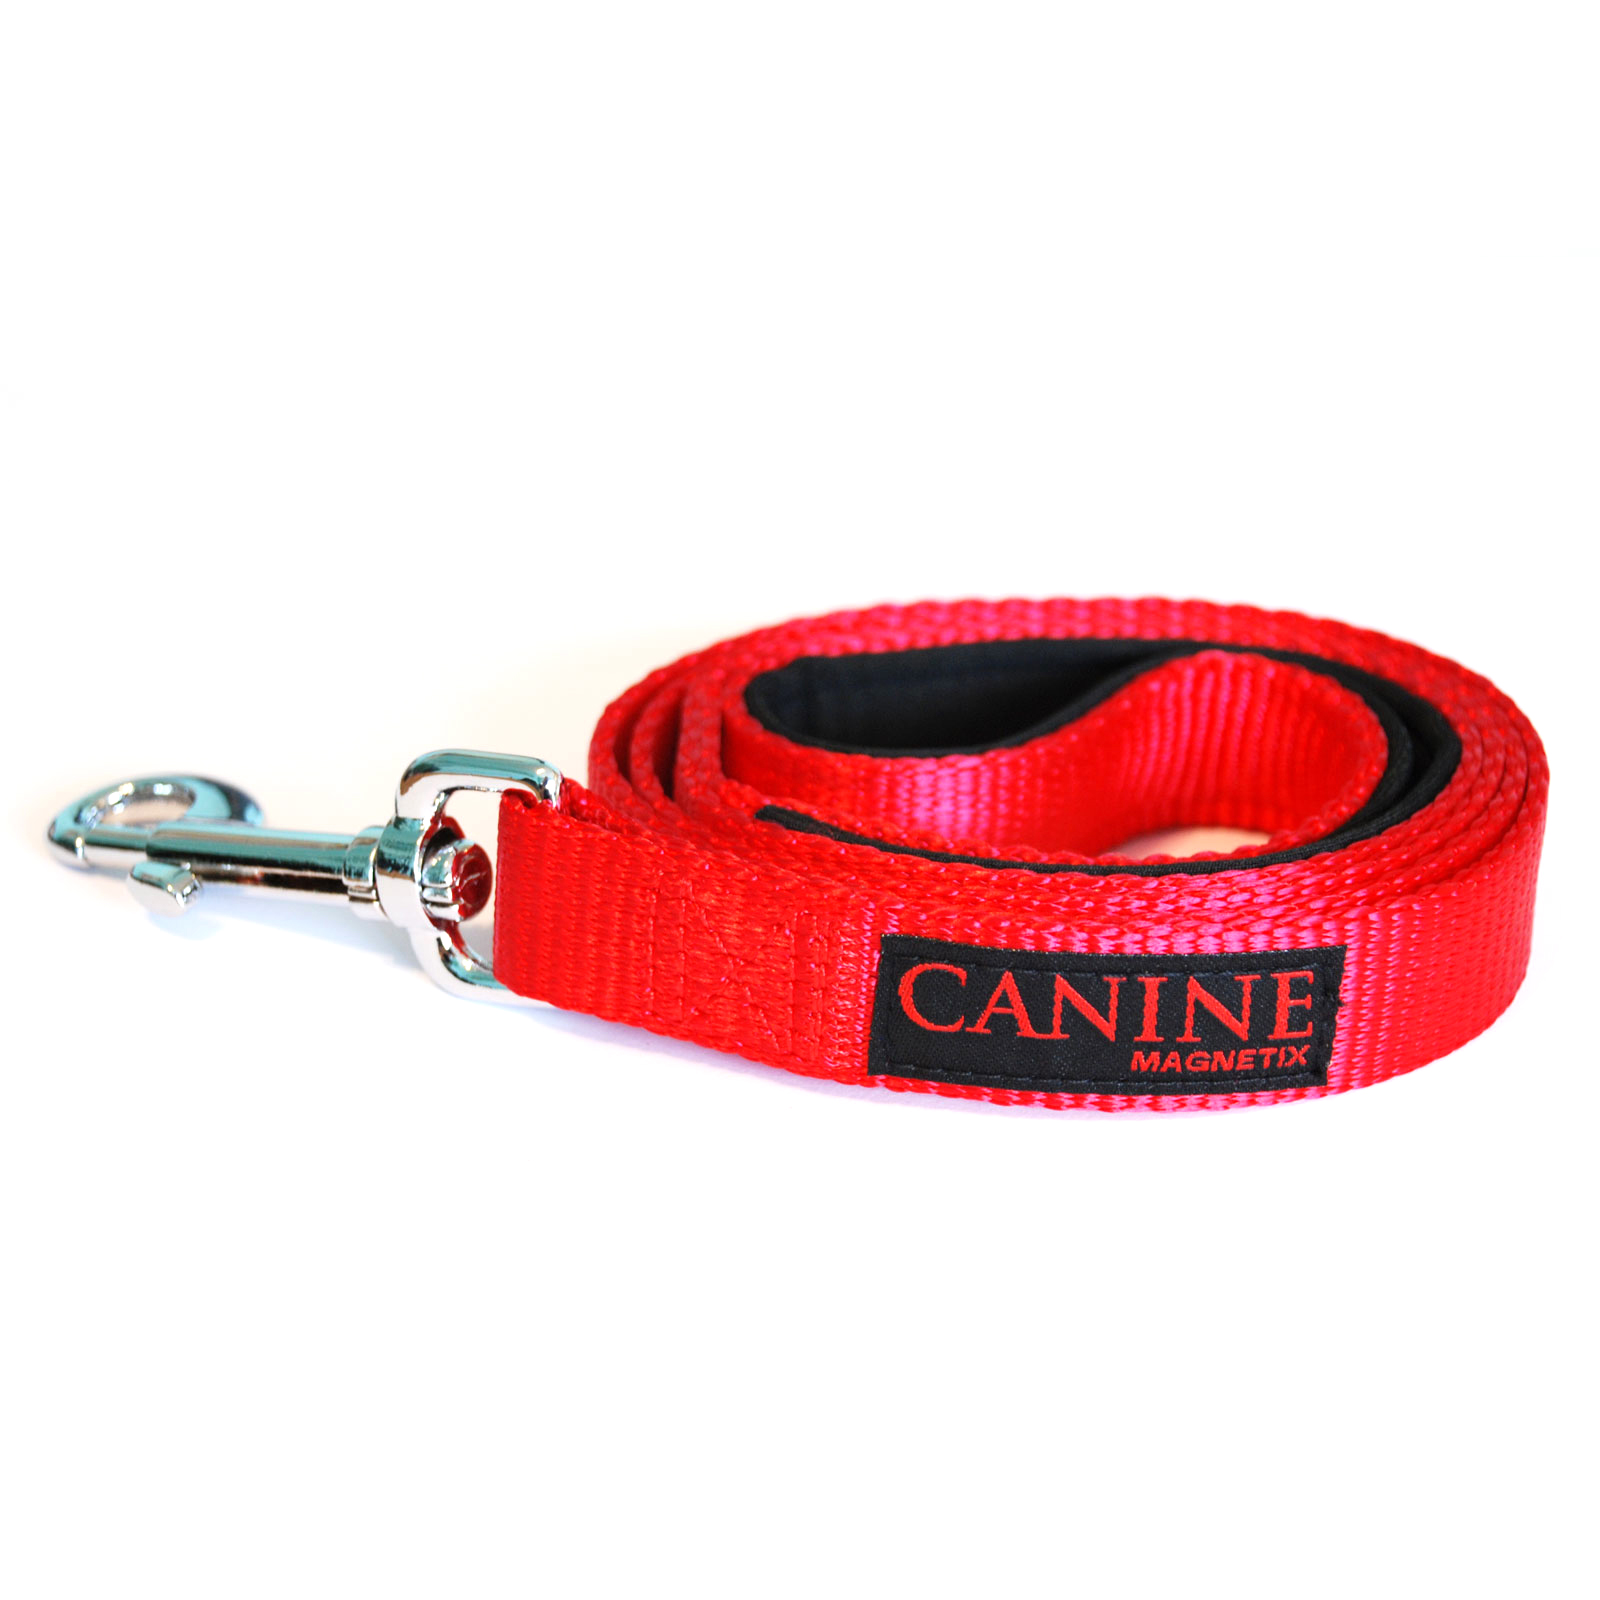 Red dog collar lead - Canine Magnetix